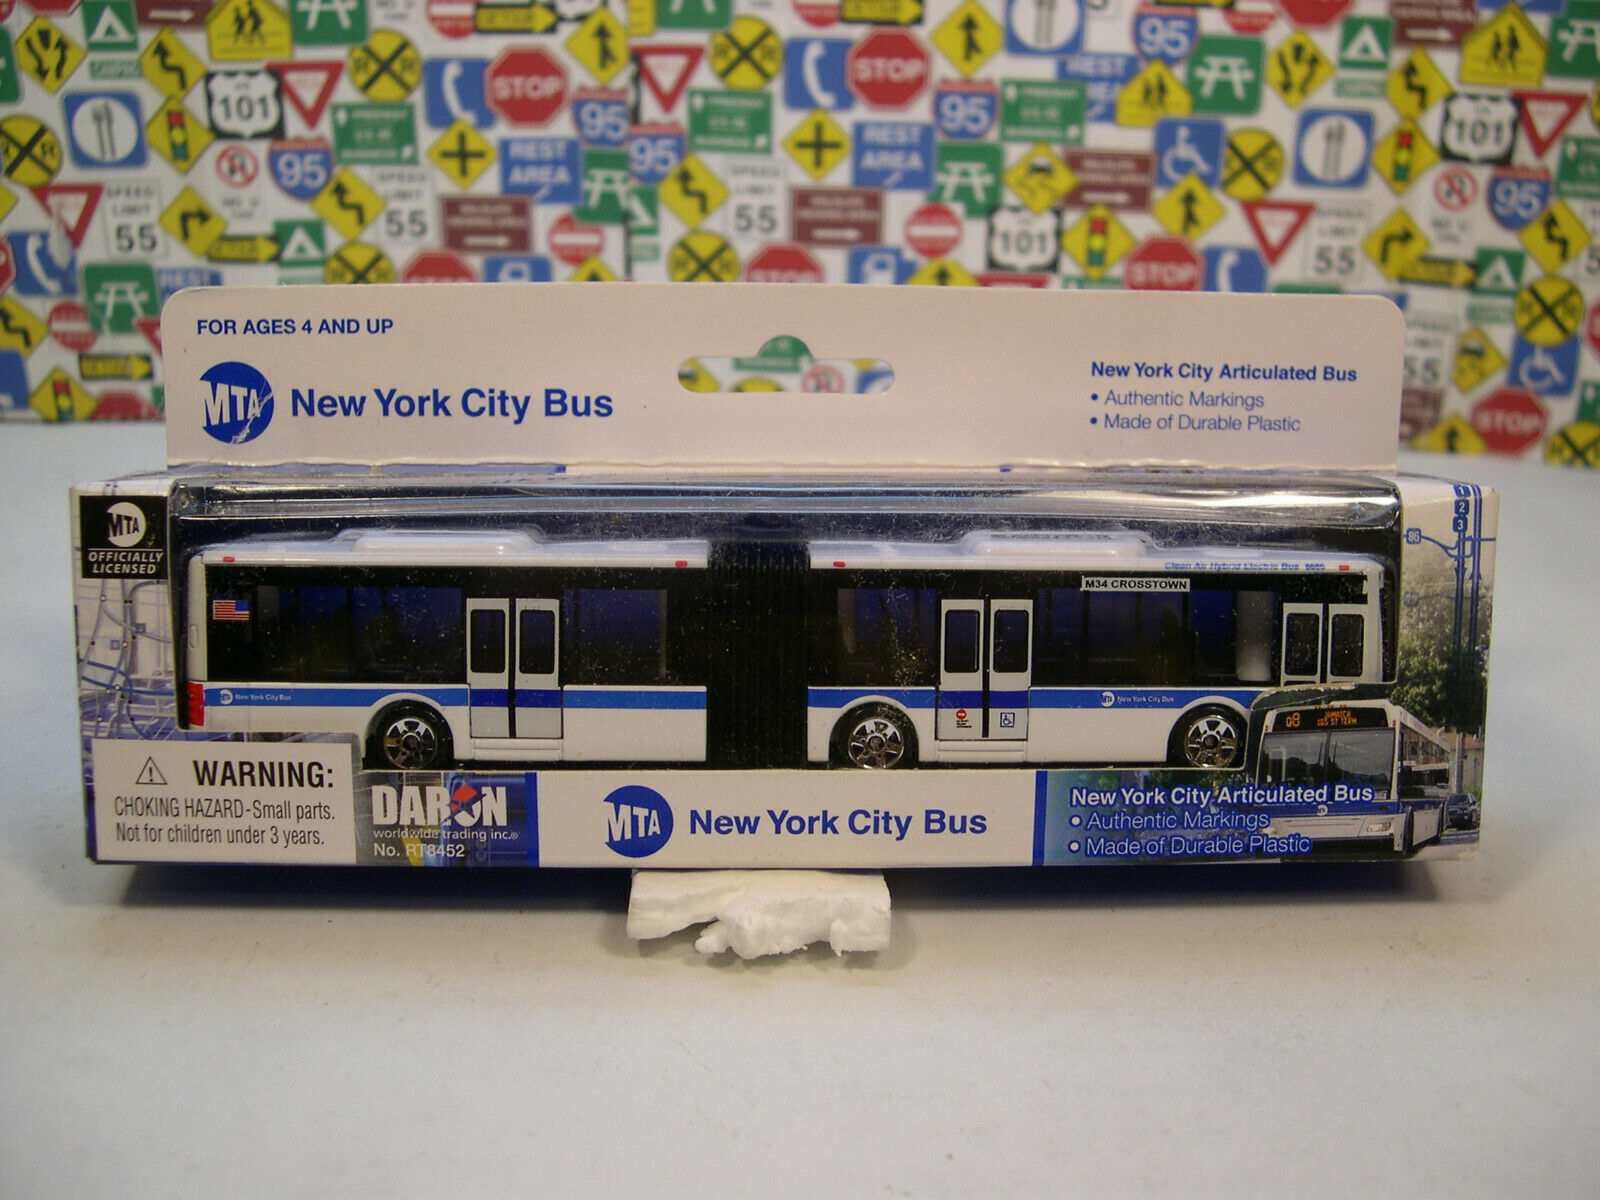 Toy Daron Mta Articulated Bus Small Car Play Game Kids Vehic